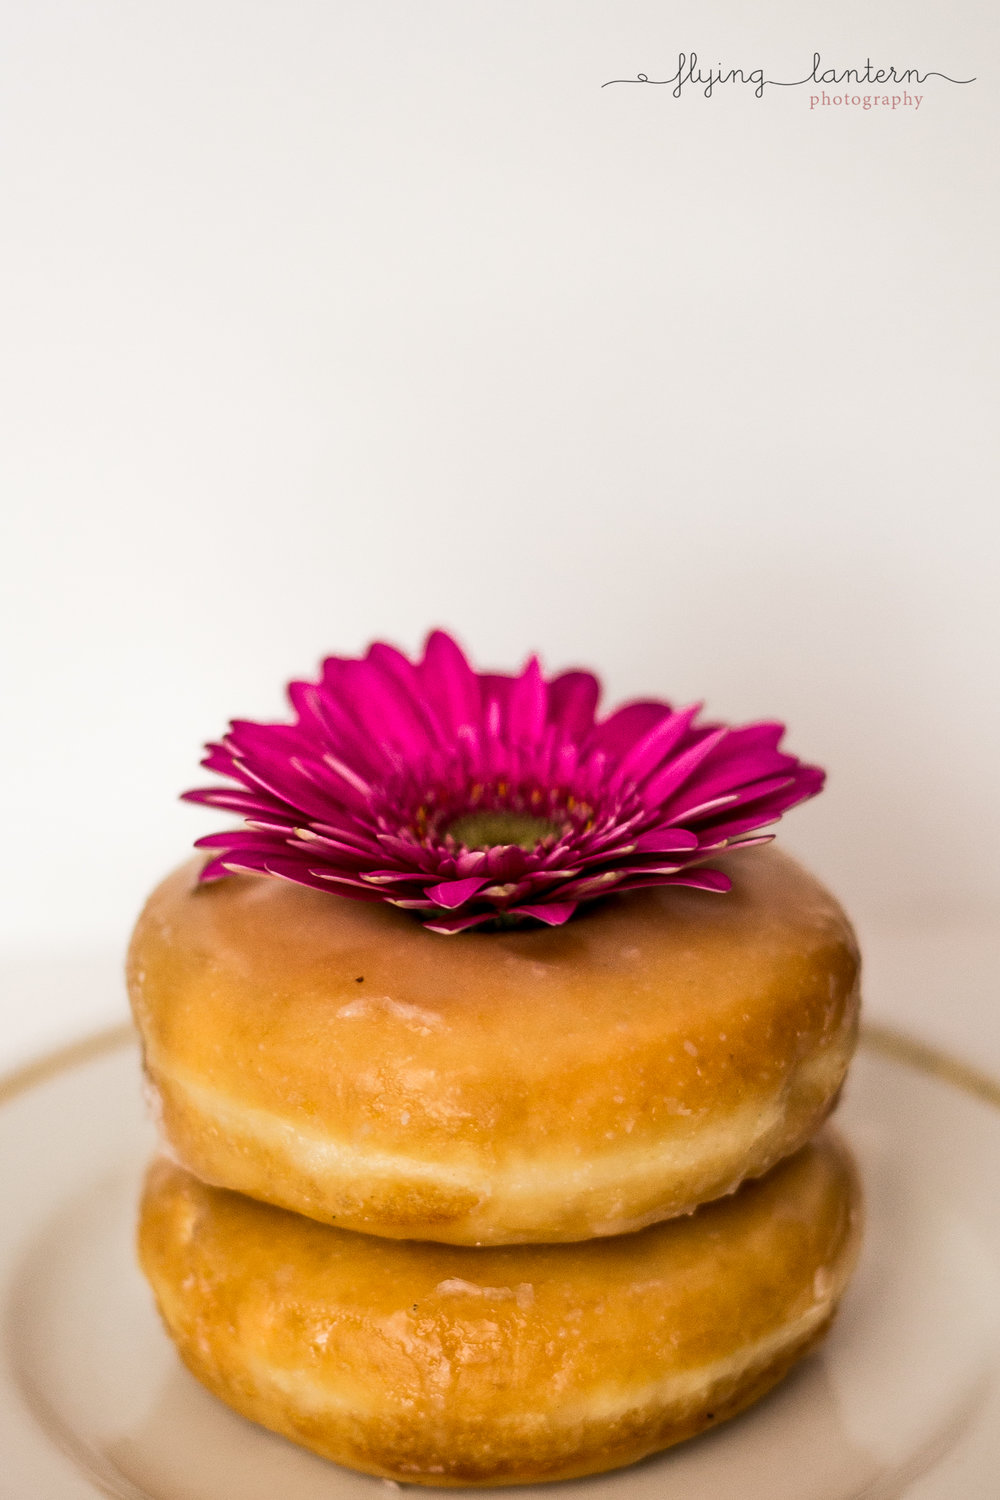 food photography donuts product lifestyle photography in austin, texas by erin reas of flying lantern photography